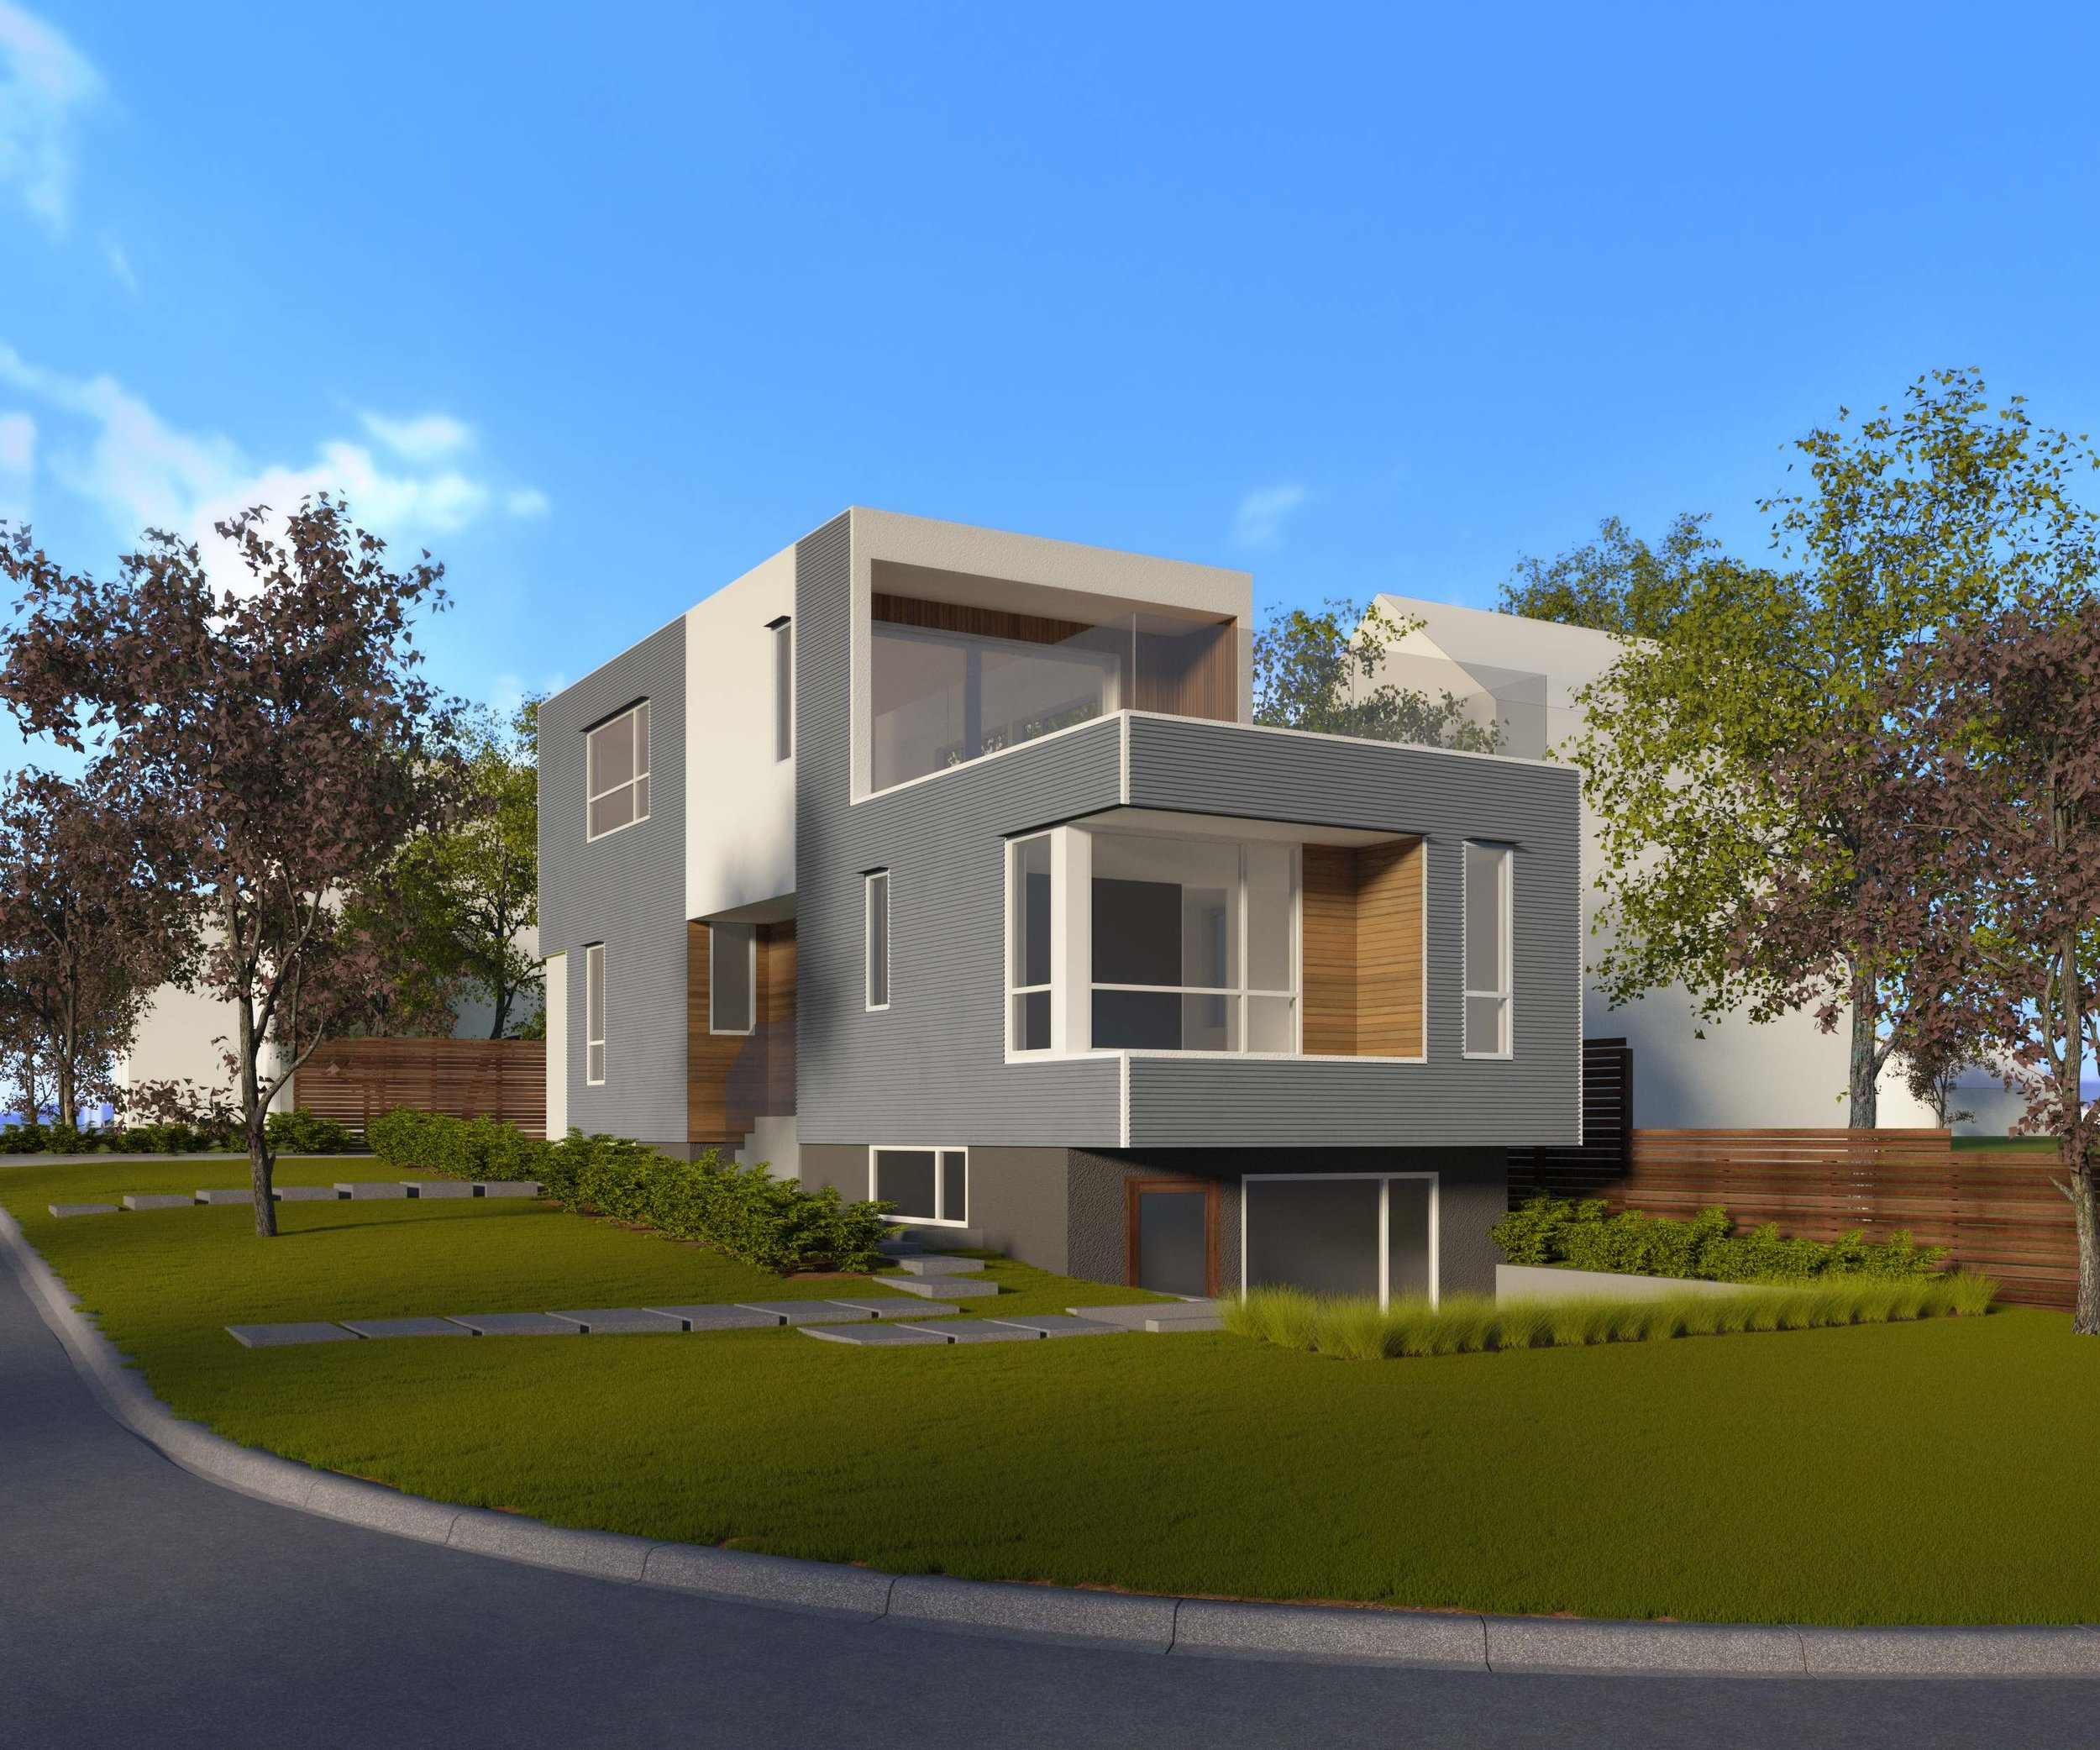 Front View of Sturdee Street Duplex - a Modern duplex designed and built in Saxe Point, Victoria BC